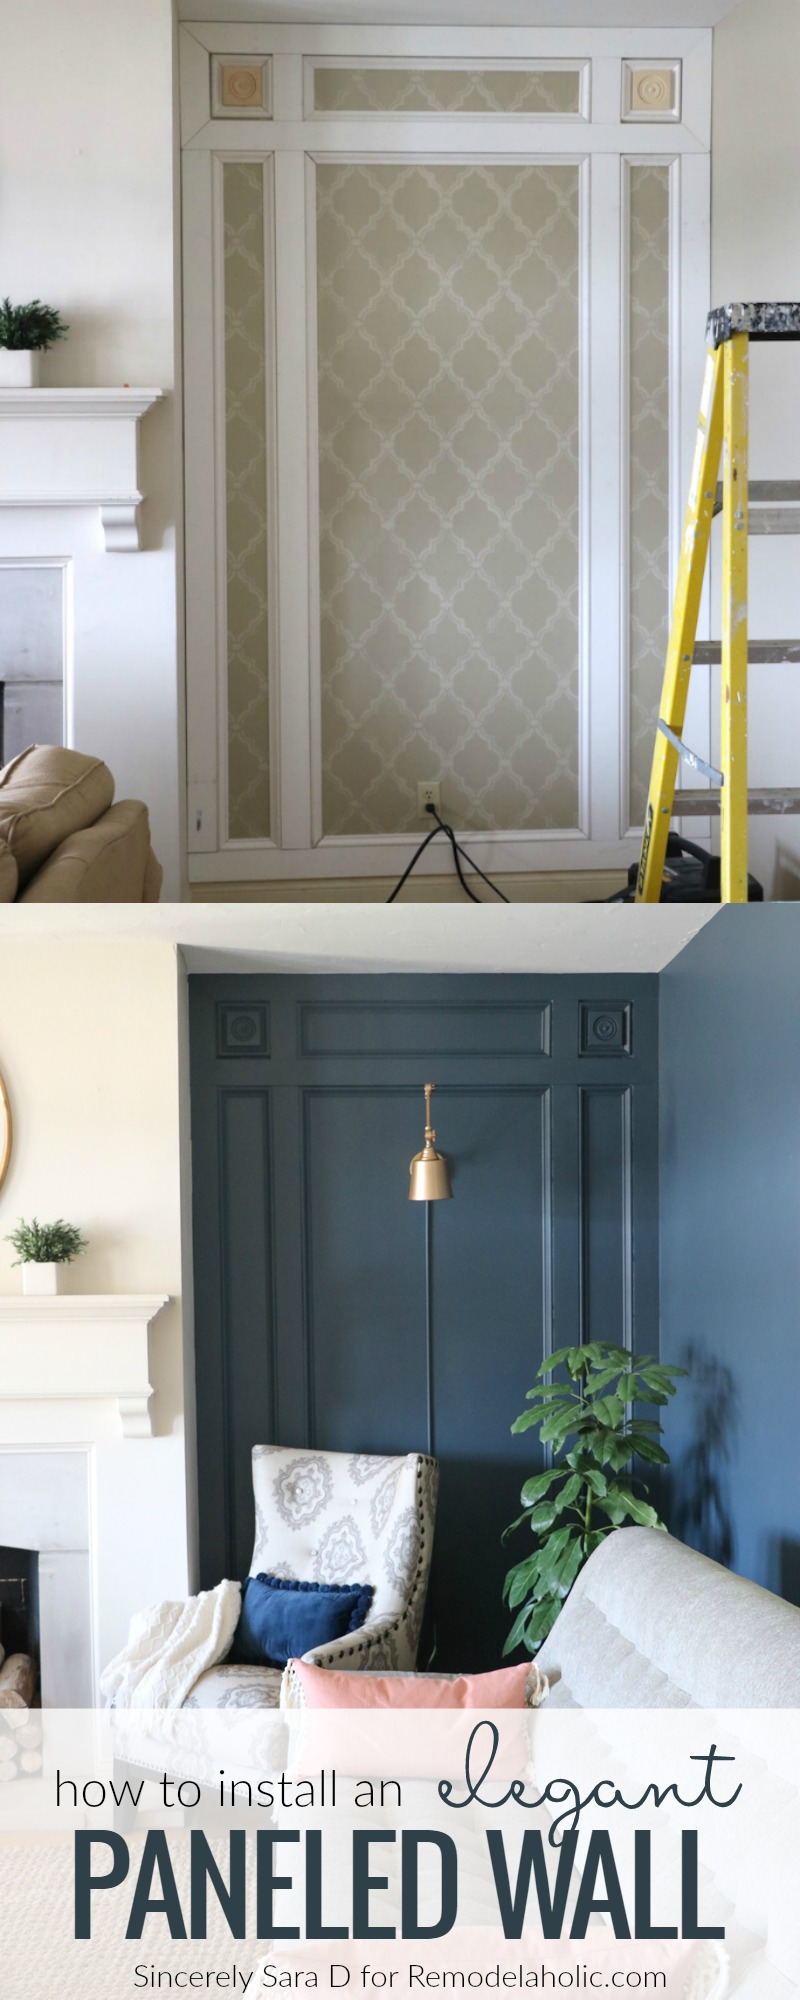 Paneled Walls Pics: DIY Elegant Paneled Wall Treatment